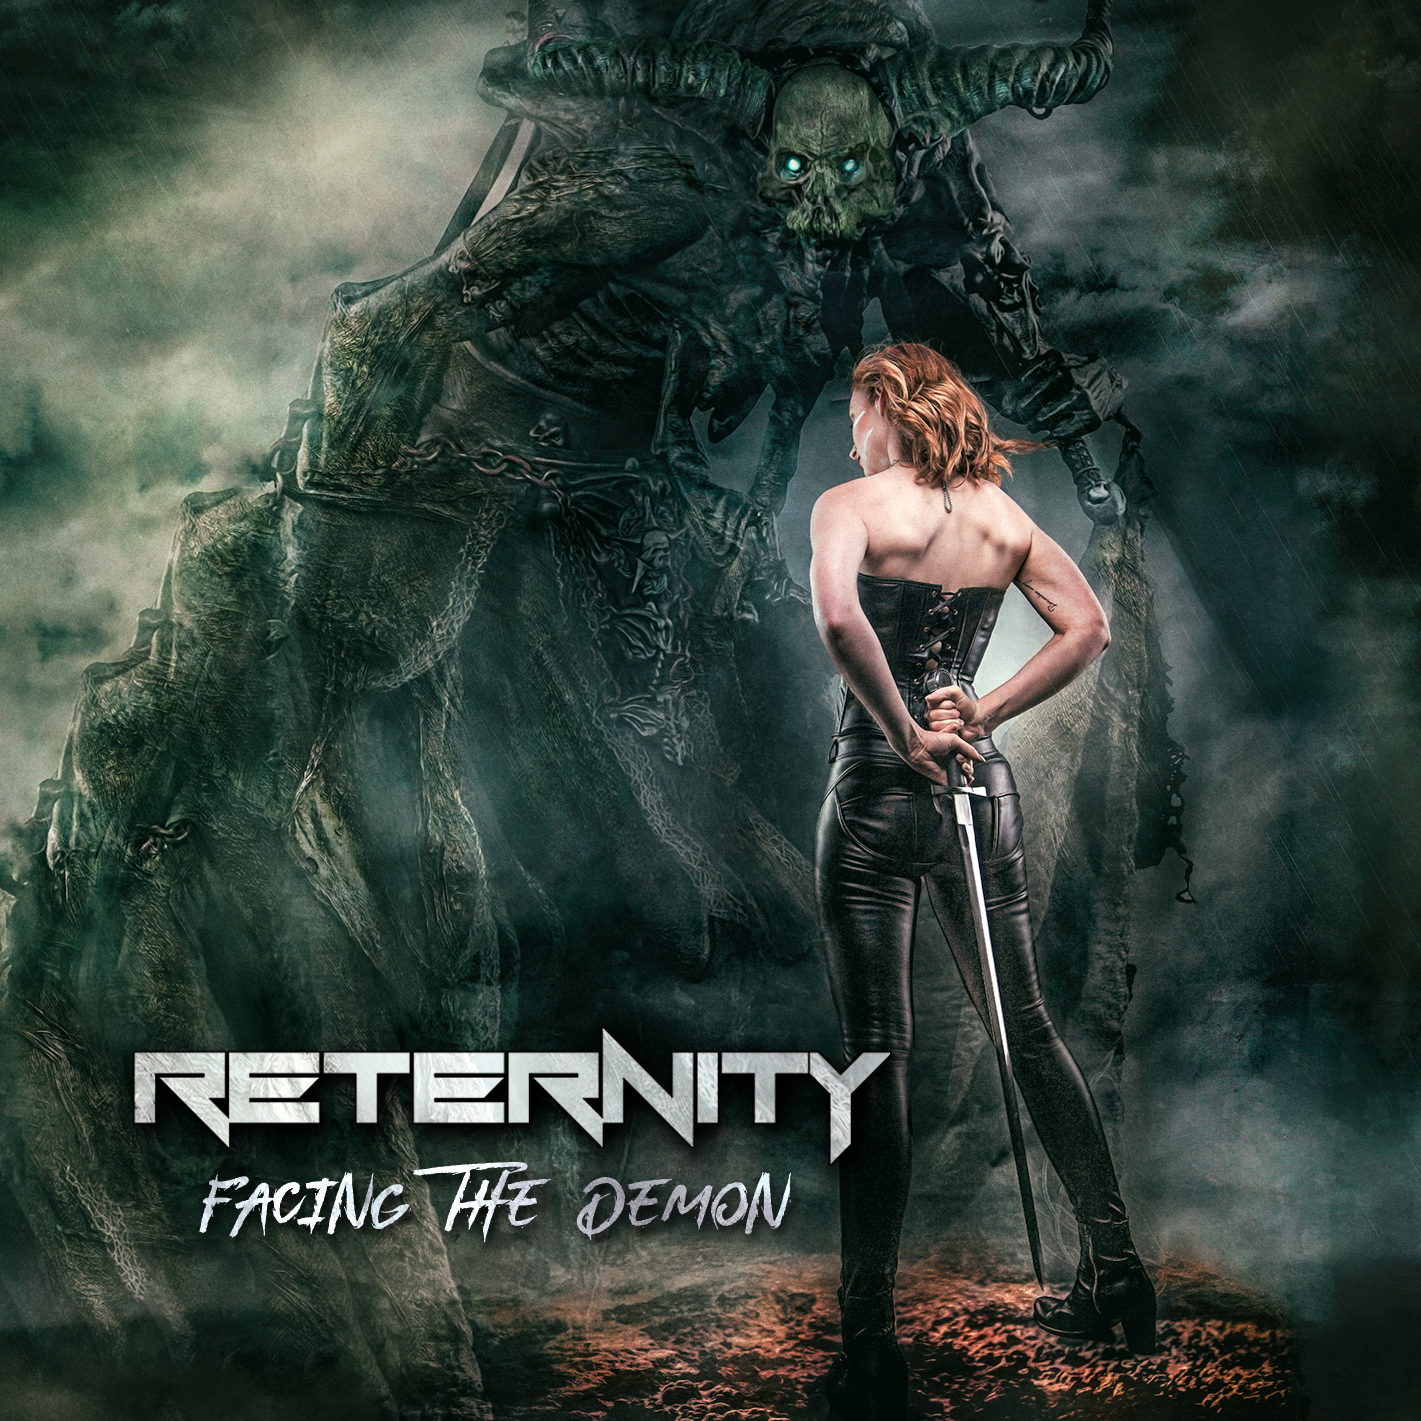 reternity-facing-the-demon-innere-daemonen-album-review